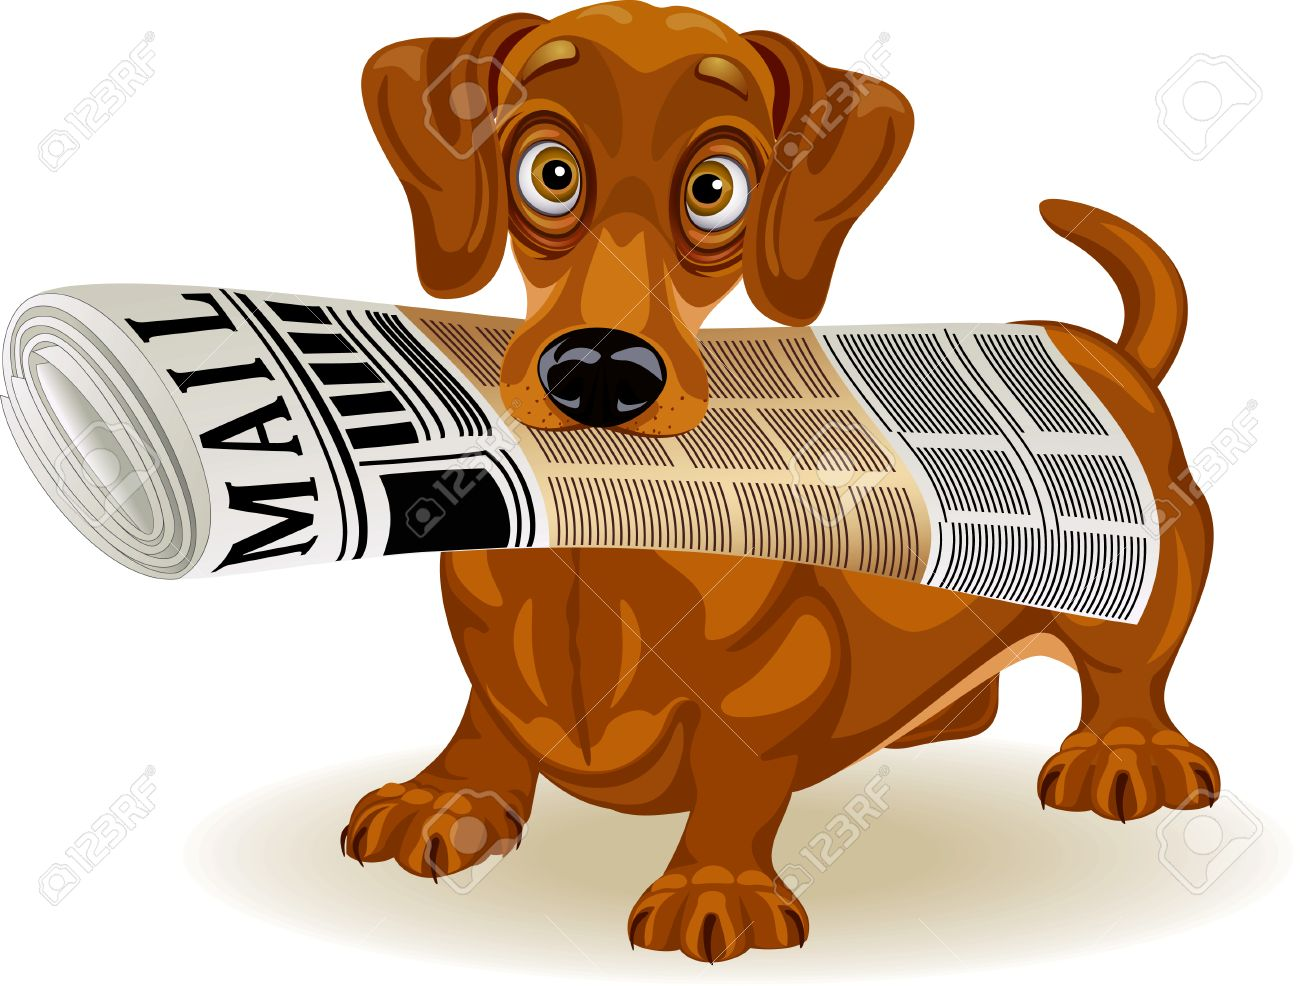 Dog with newspaper clipart 8 » Clipart Station.